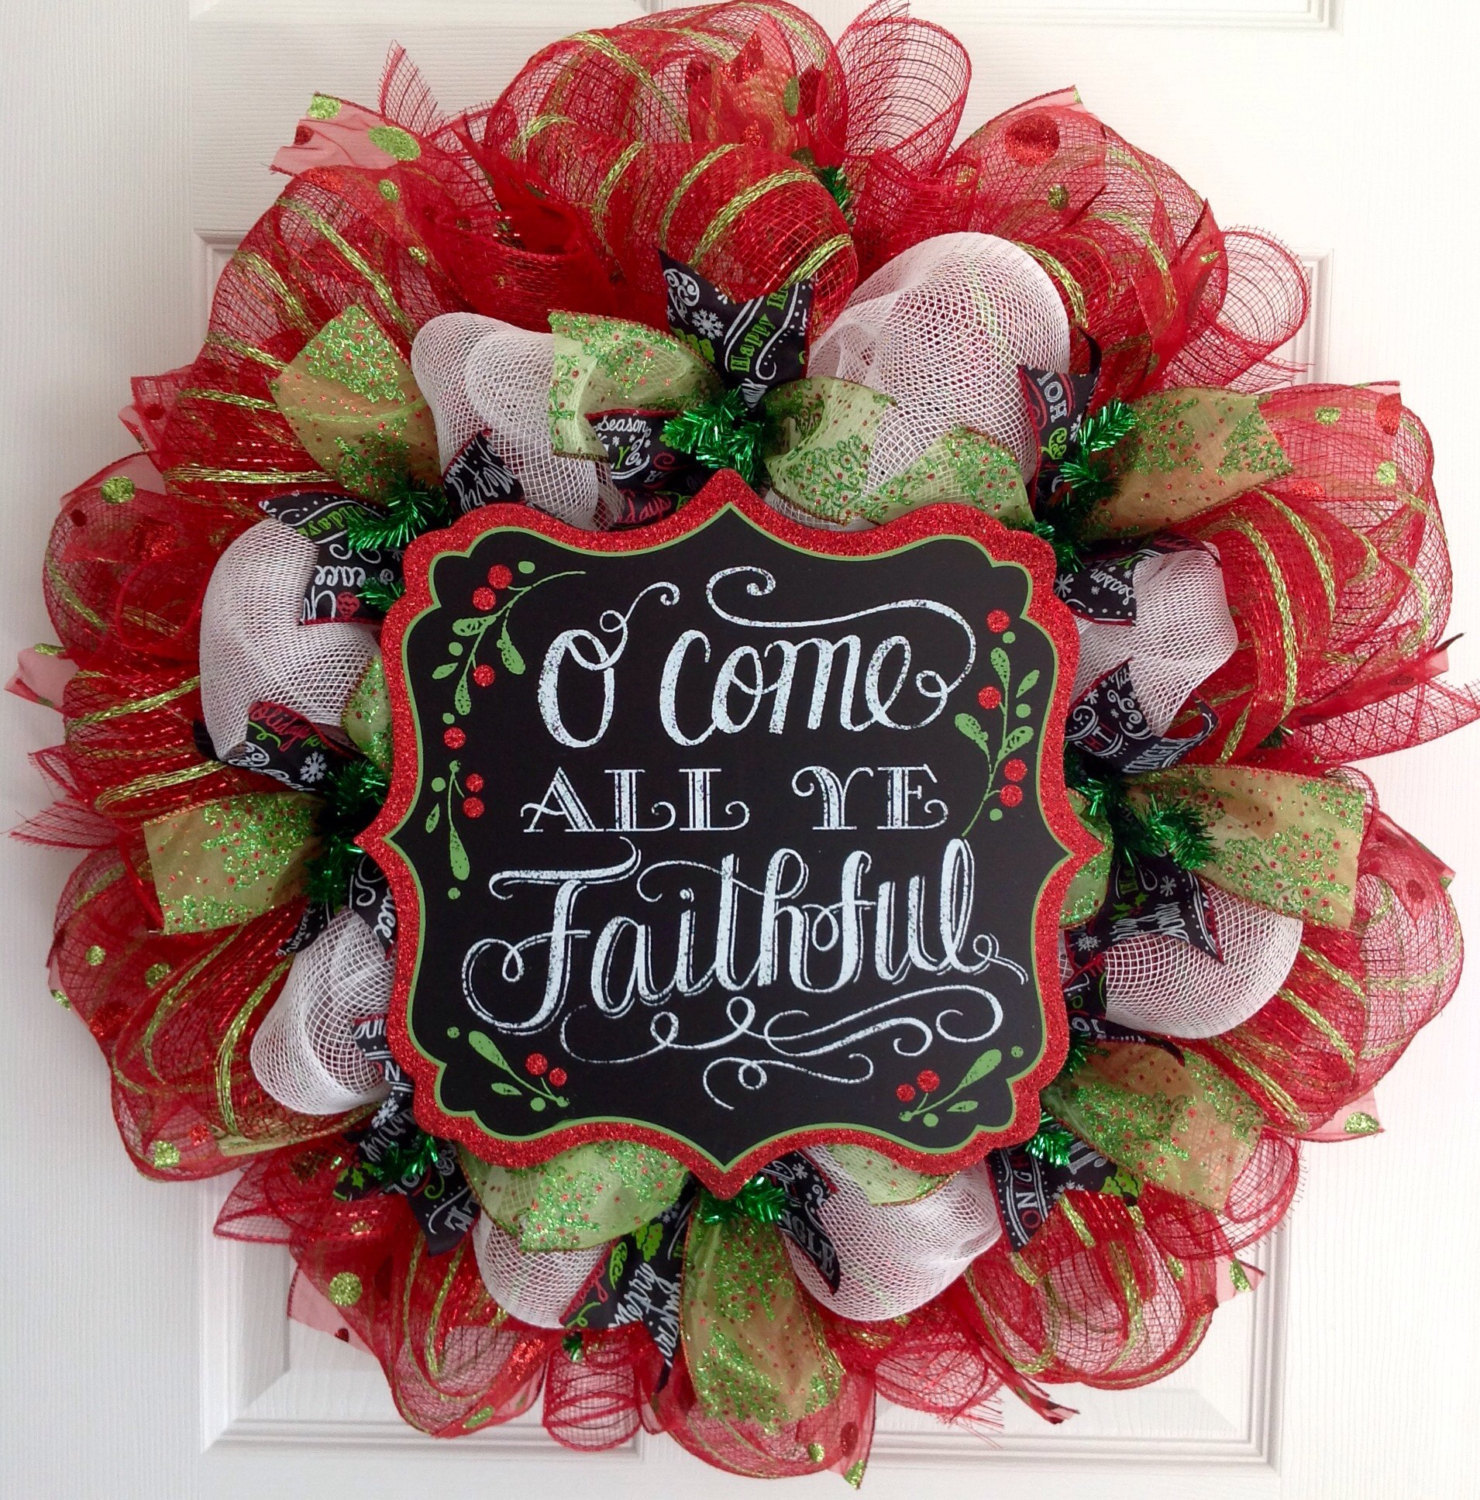 Primary image for Come All Ye Faithful Handmade Deco Mesh Christmas Wreath